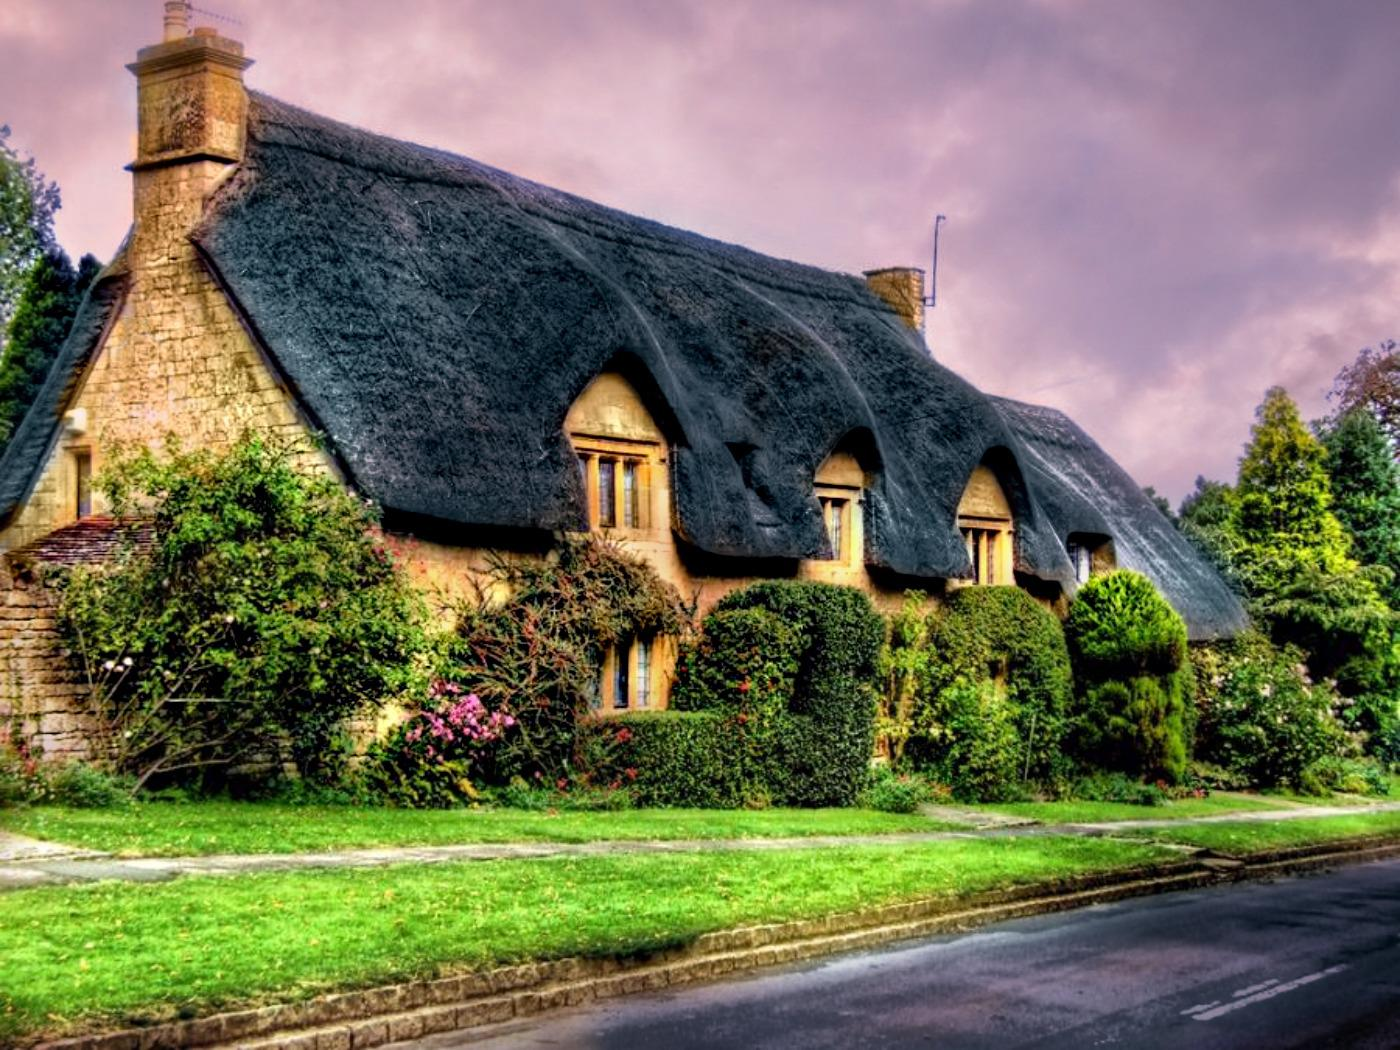 Download English Cottage Wallpaper Gallery HD Wallpapers Download Free Images Wallpaper [1000image.com]